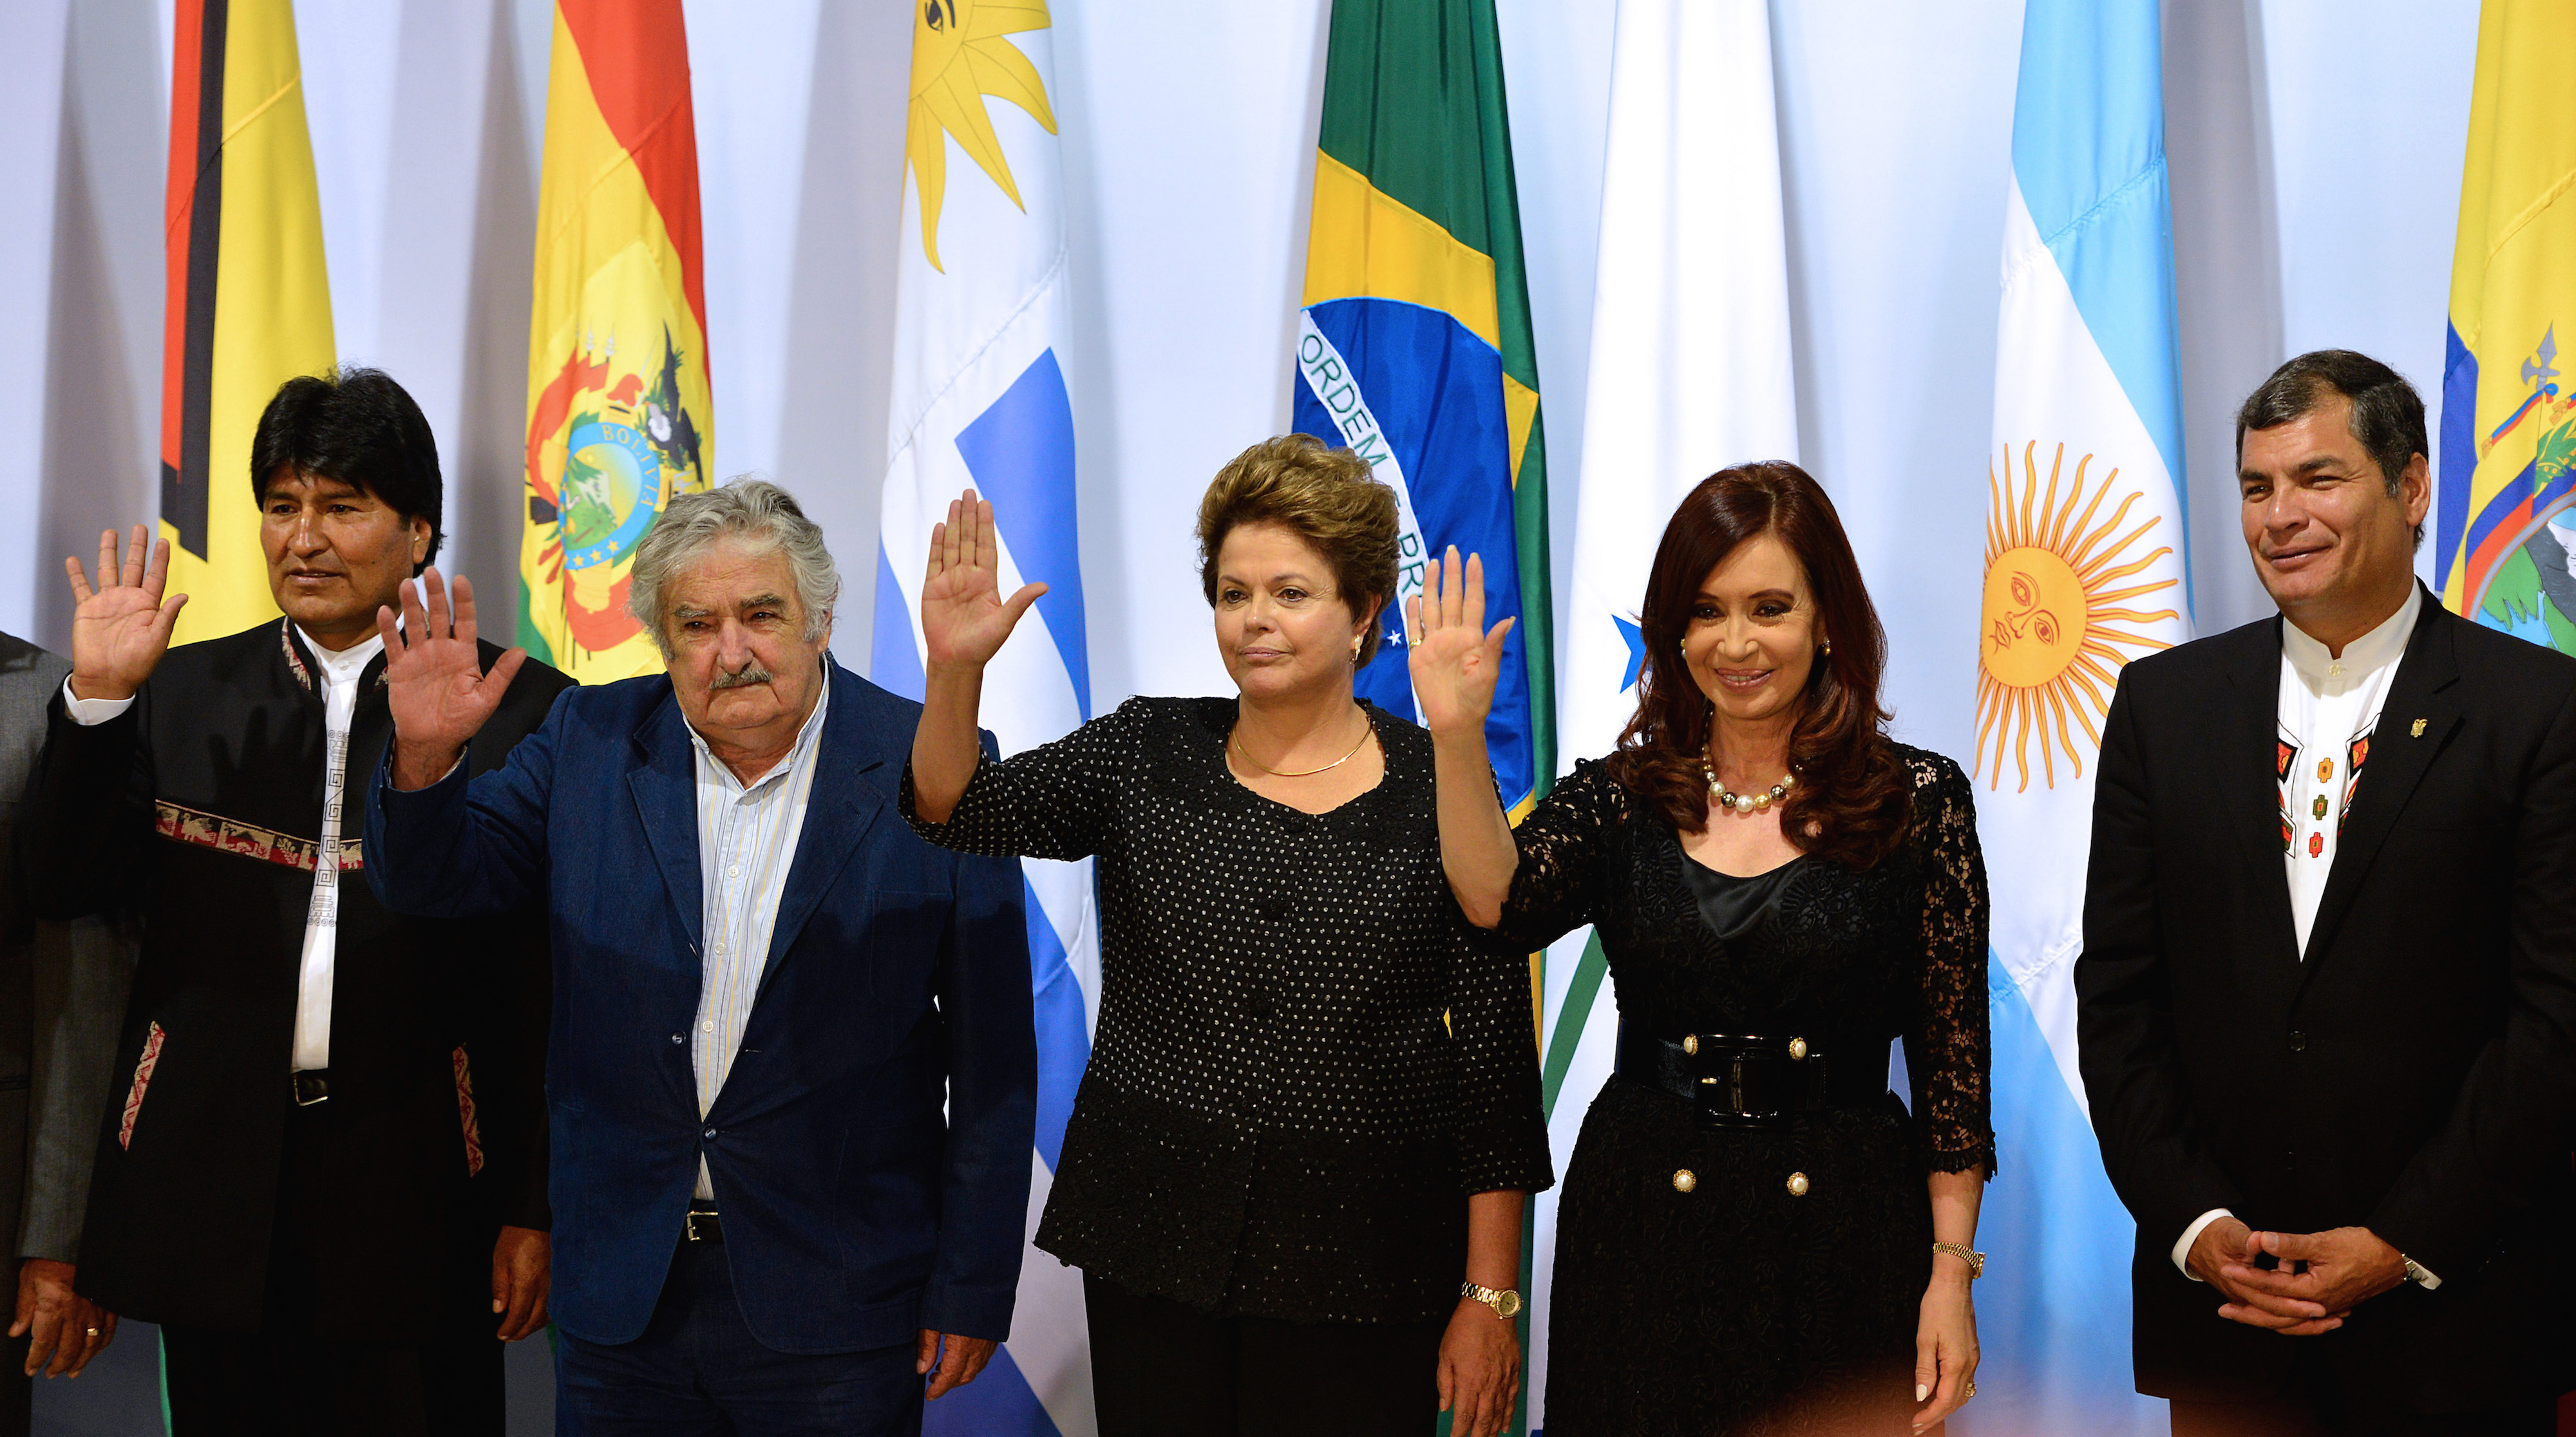 (L to R) Presidents from Bolivia, Evo Morales, Uruguay, Jose Mujica, Brazil, Dilma Rousseff, Argentinian Cristina Fernandez de Kirchner and Ecuador, Rafael Correa, pose for the official picture of the Summit of Heads of State of Mercosur and Associated States, at Itamaraty Palace, BrasÌlia on December 7, 2012. AFP PHOTO/Pedro LADEIRA        (Photo credit should read PEDRO LADEIRA/AFP/Getty Images)